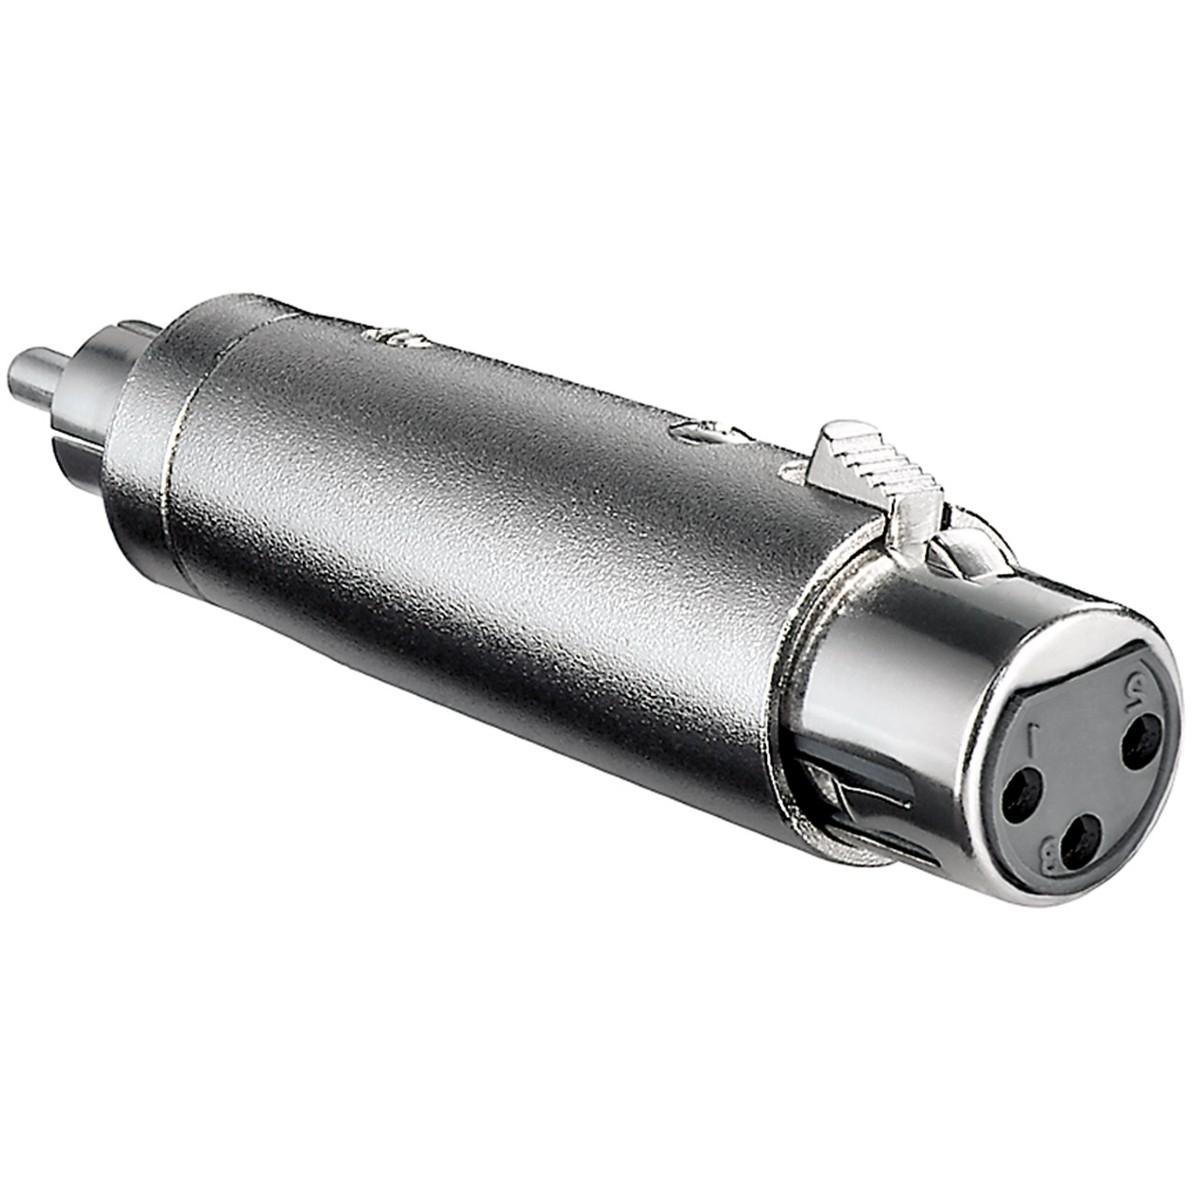 XLR - Tulp Verloop Connector 2: Tulp Male